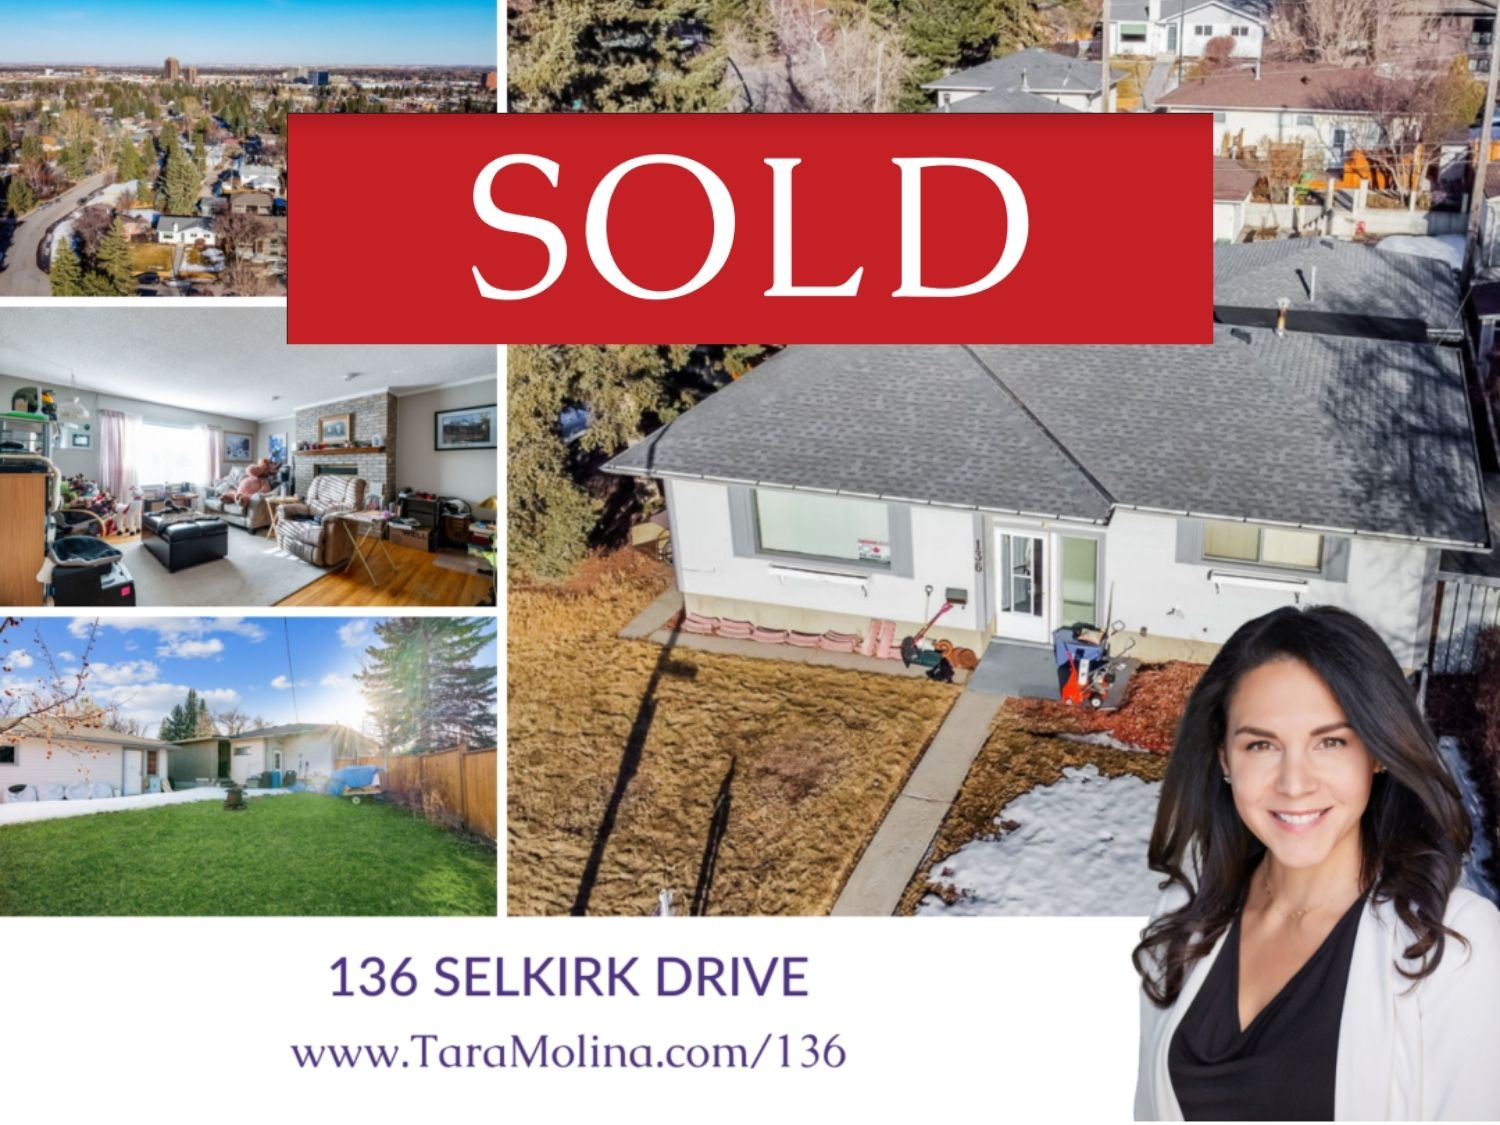 Sold by Tara Molina